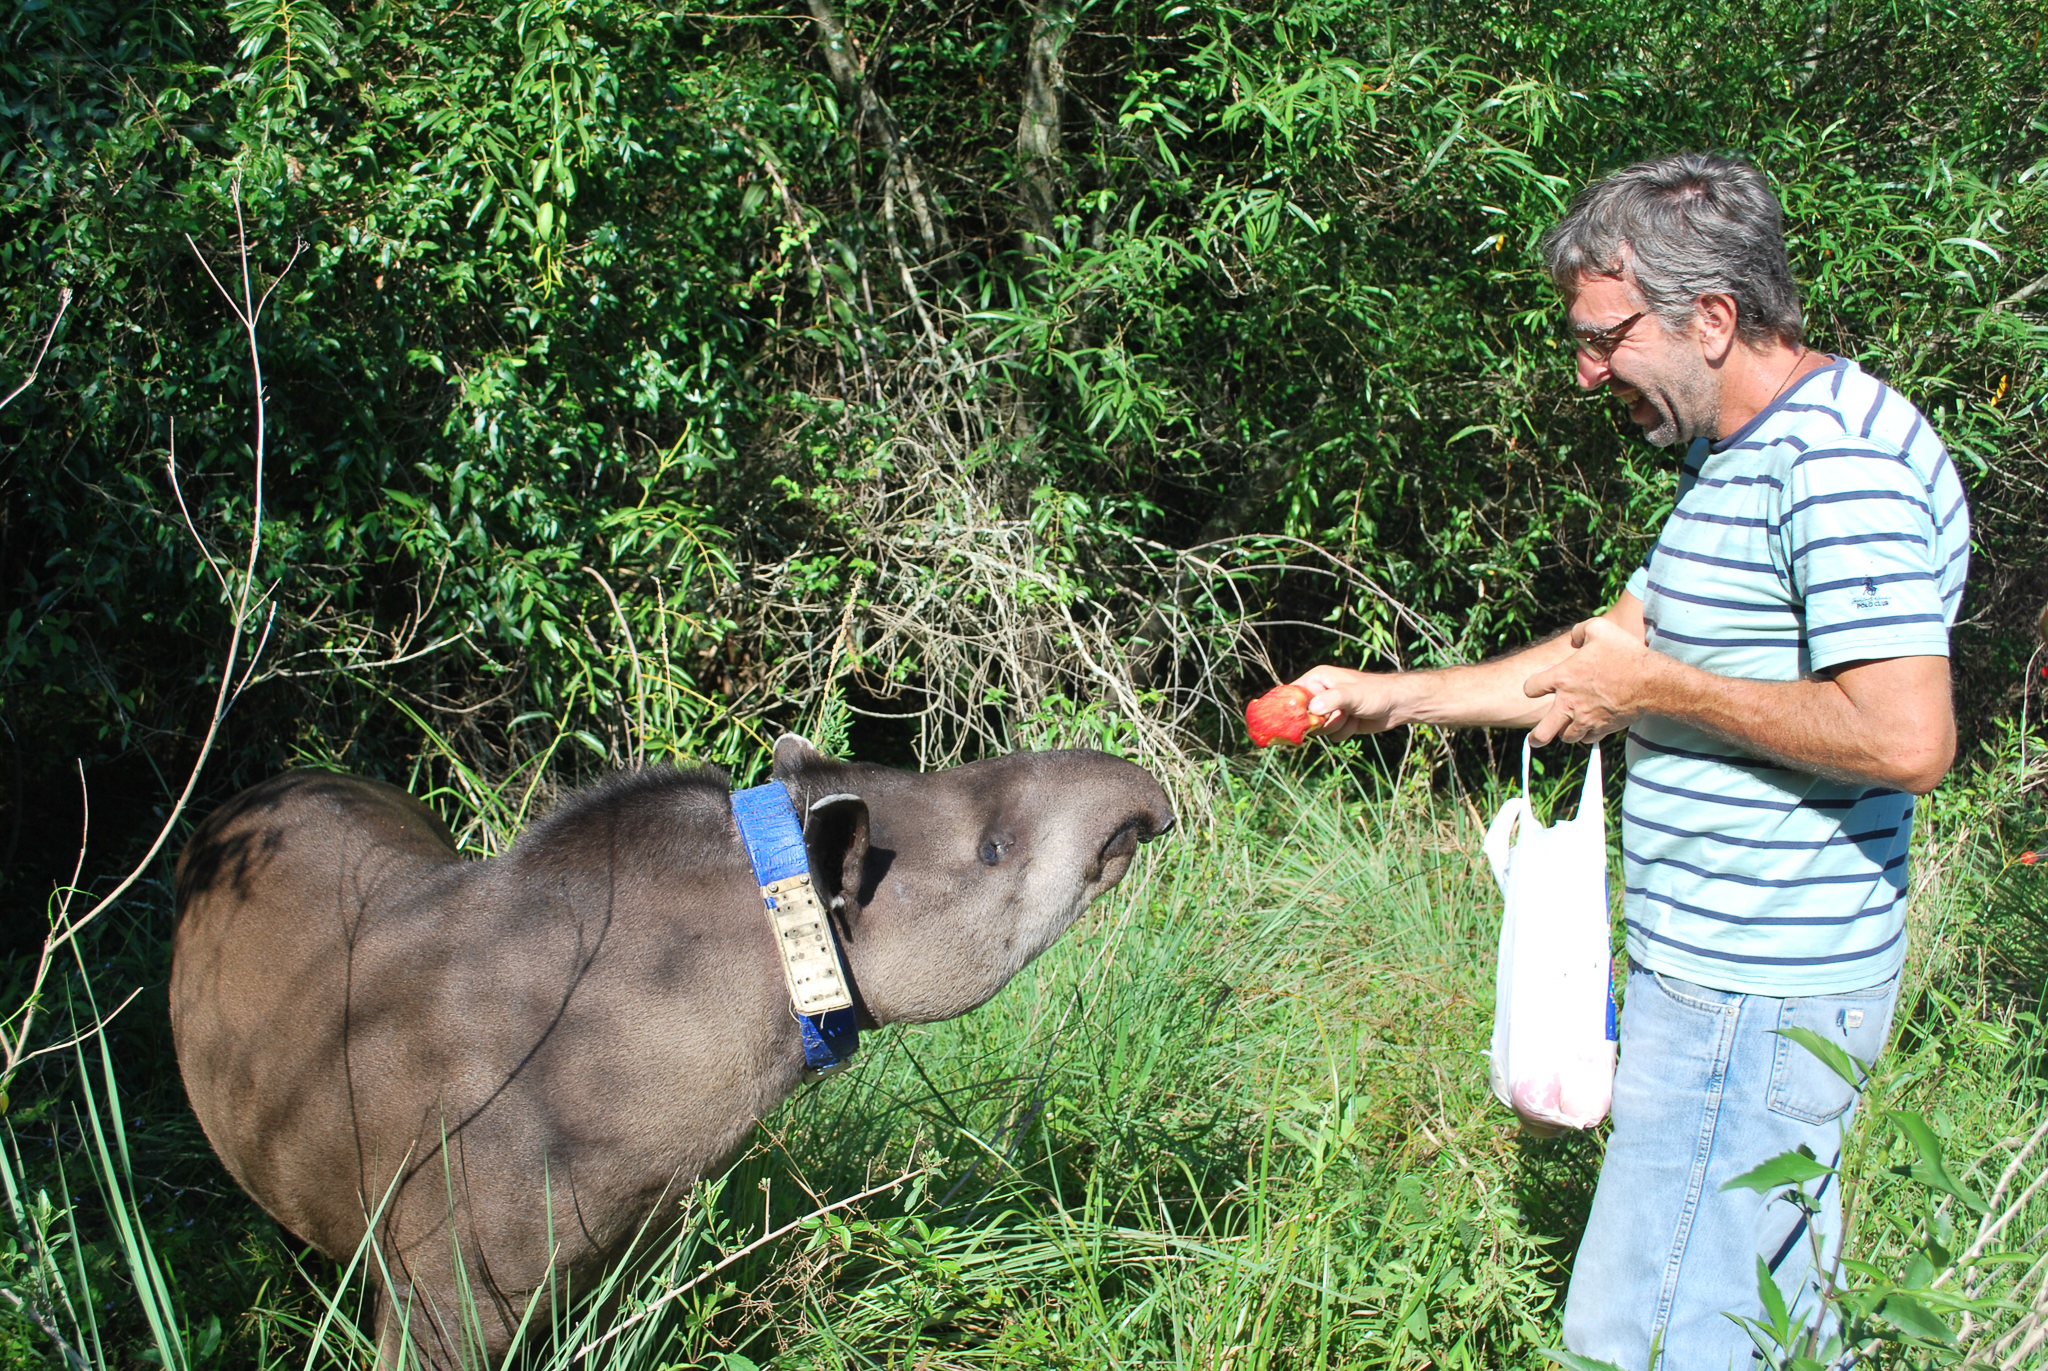 Sebastián Di Martino offers a piece of fruit to Francisco, a recently released tapir.—Photo by Brooke Jarvis